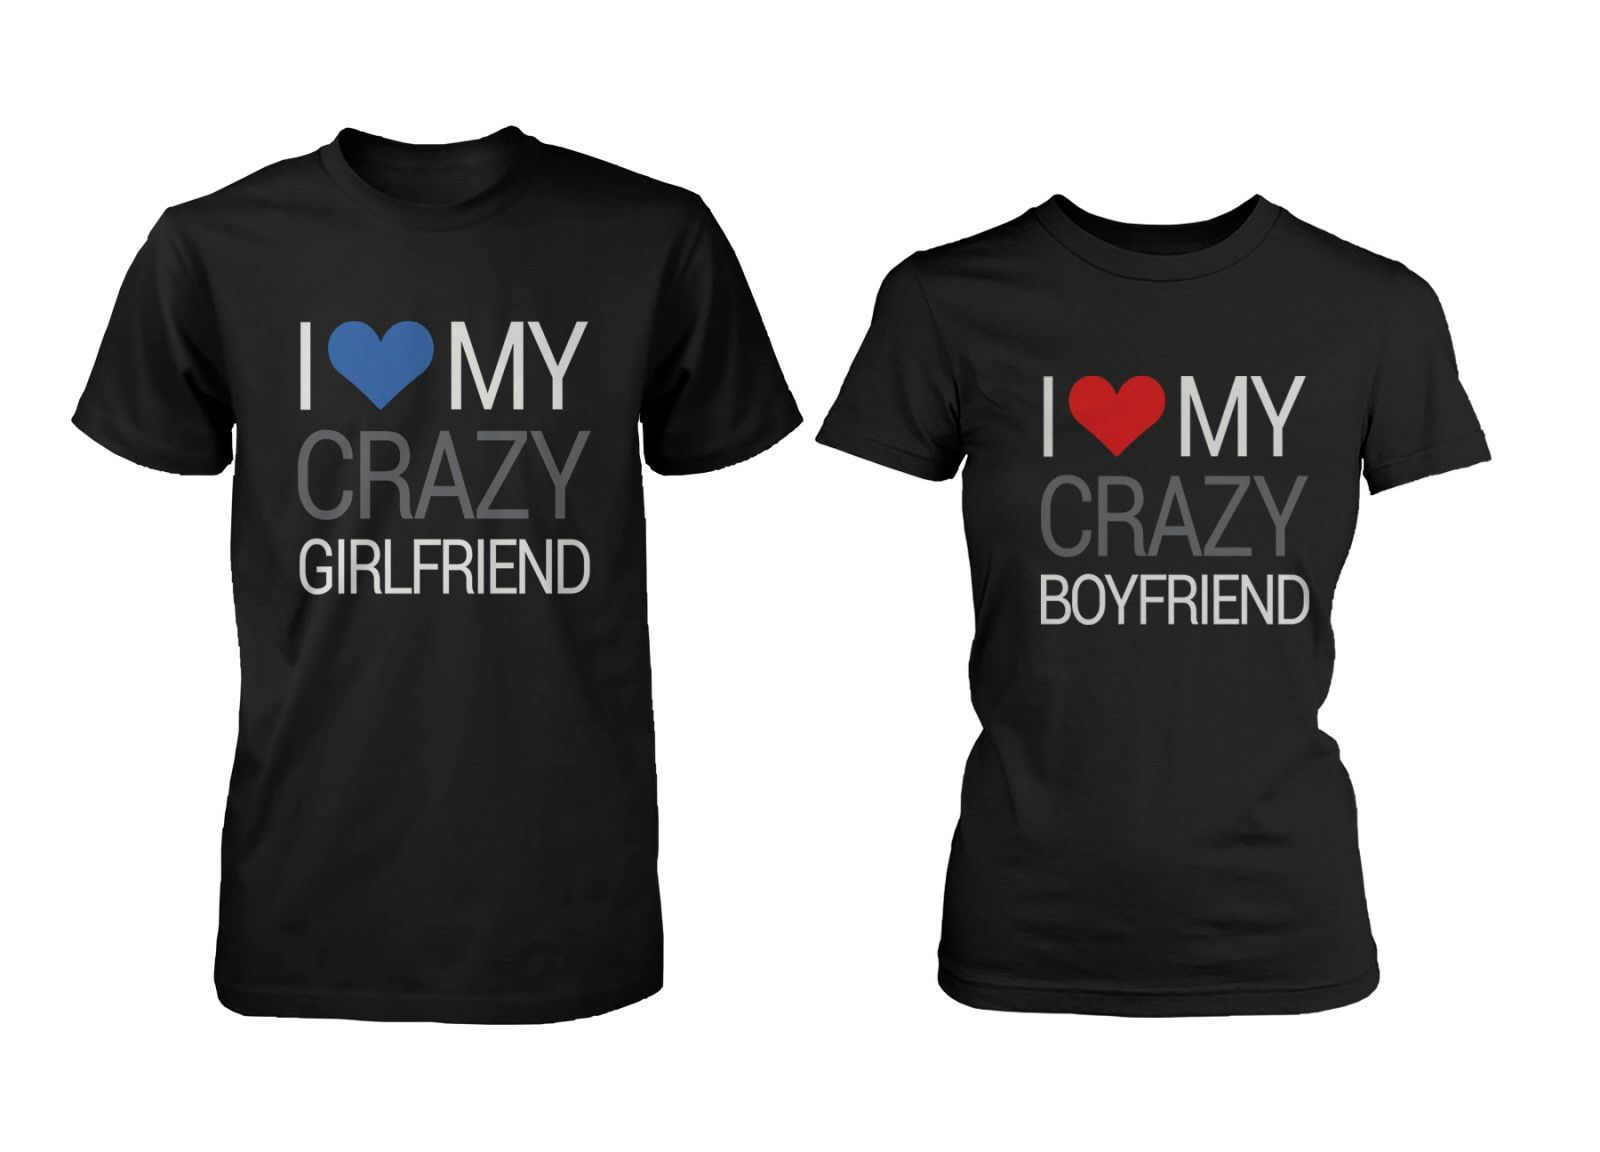 Couple t shirt design white - His And Hers Matching Couple T Shirts I Love My Crazy Boyfriend And Gi